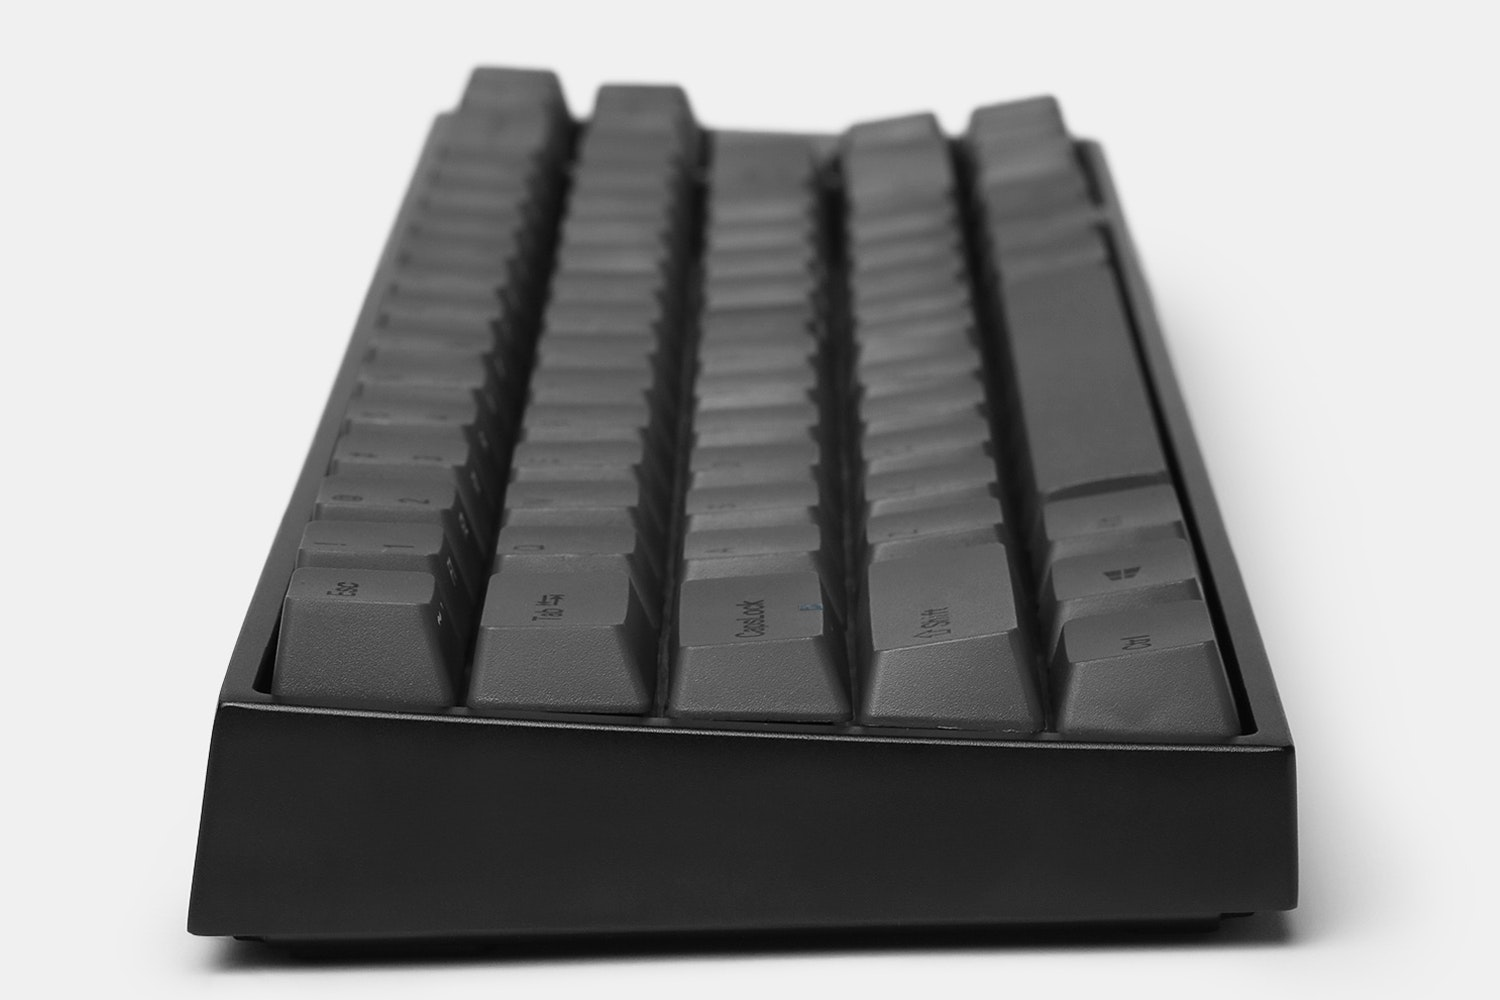 Varmilo VA68M V2 Aluminum Mechanical Keyboard